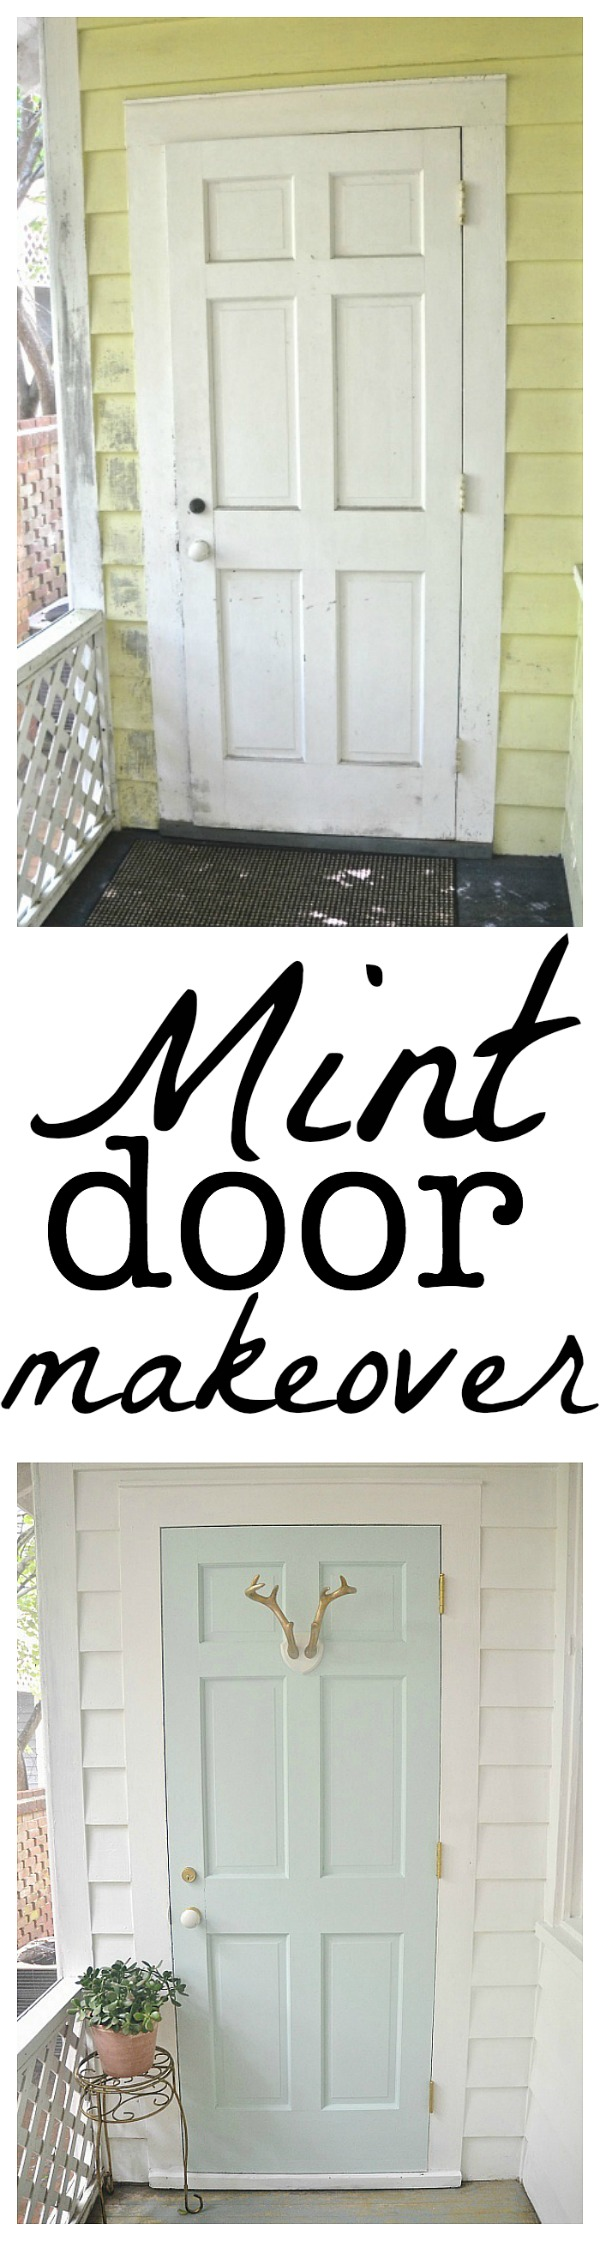 Mint door makeover - Behr Whipped Mint - lizmarieblog.com